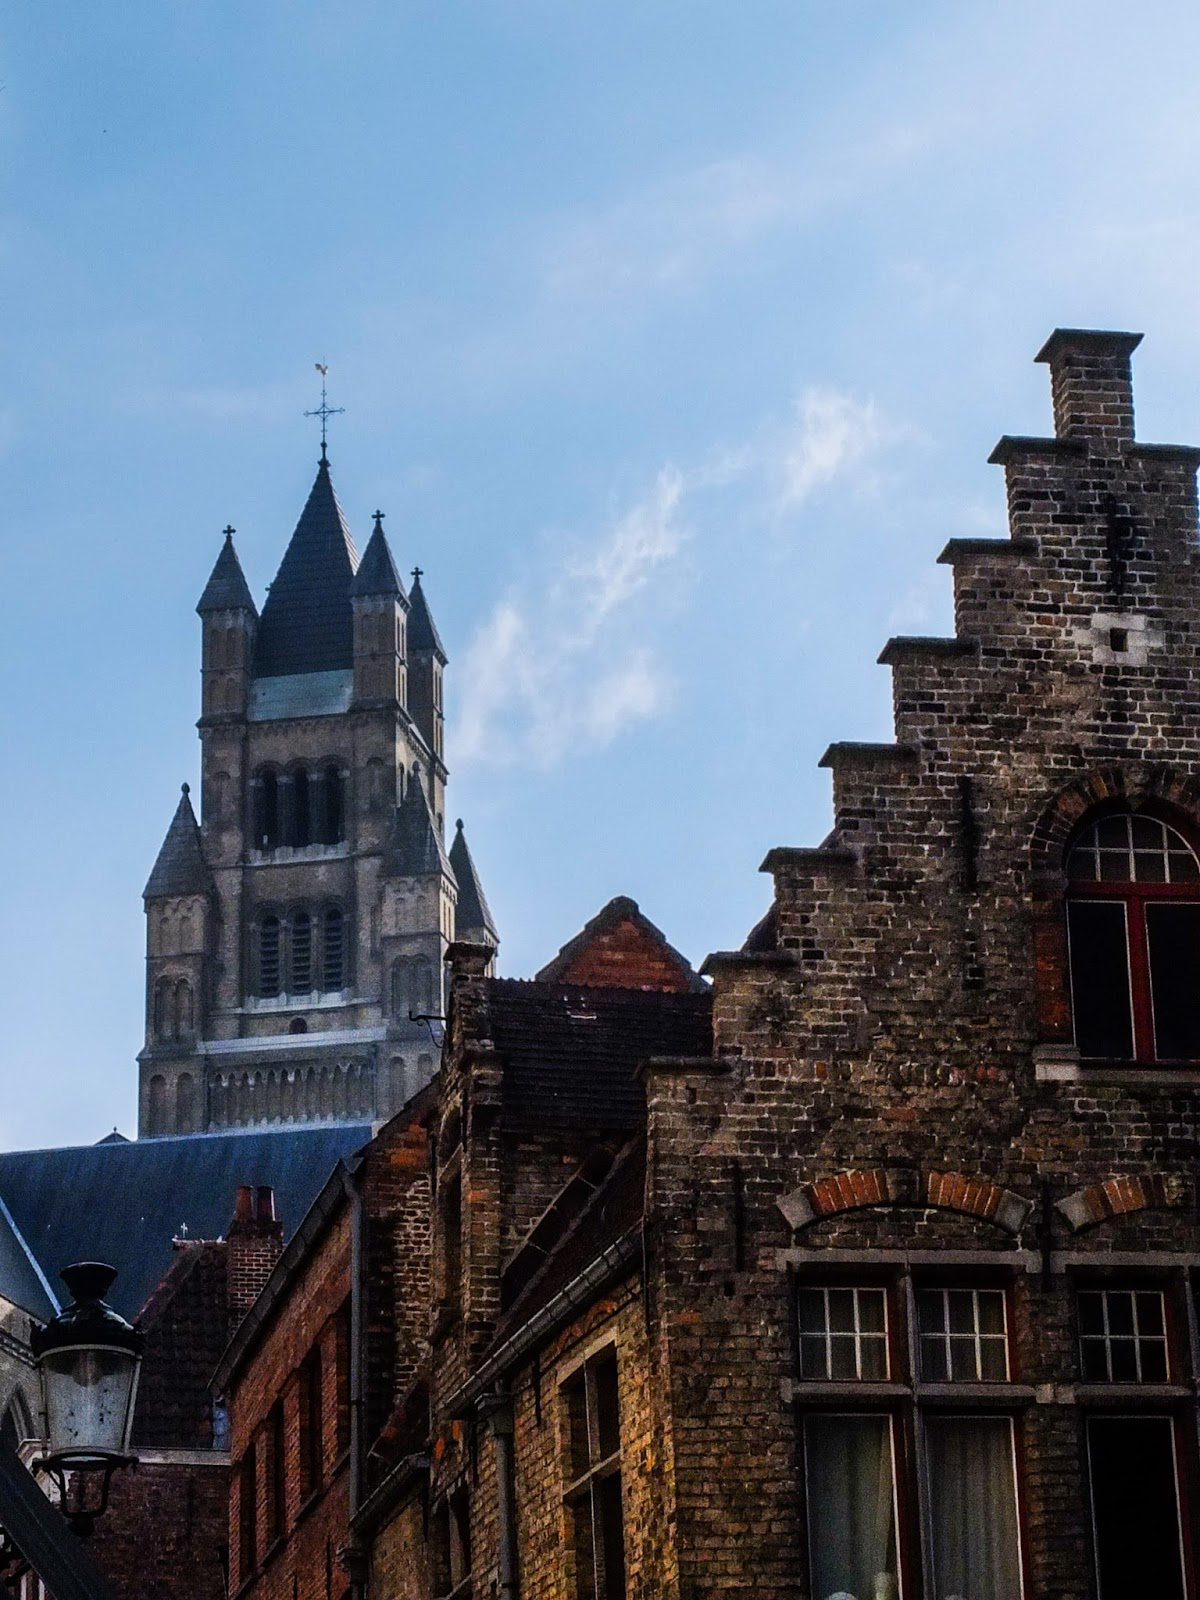 The St.Salvator Cathedral in Bruges showing behind other medieval buildings.